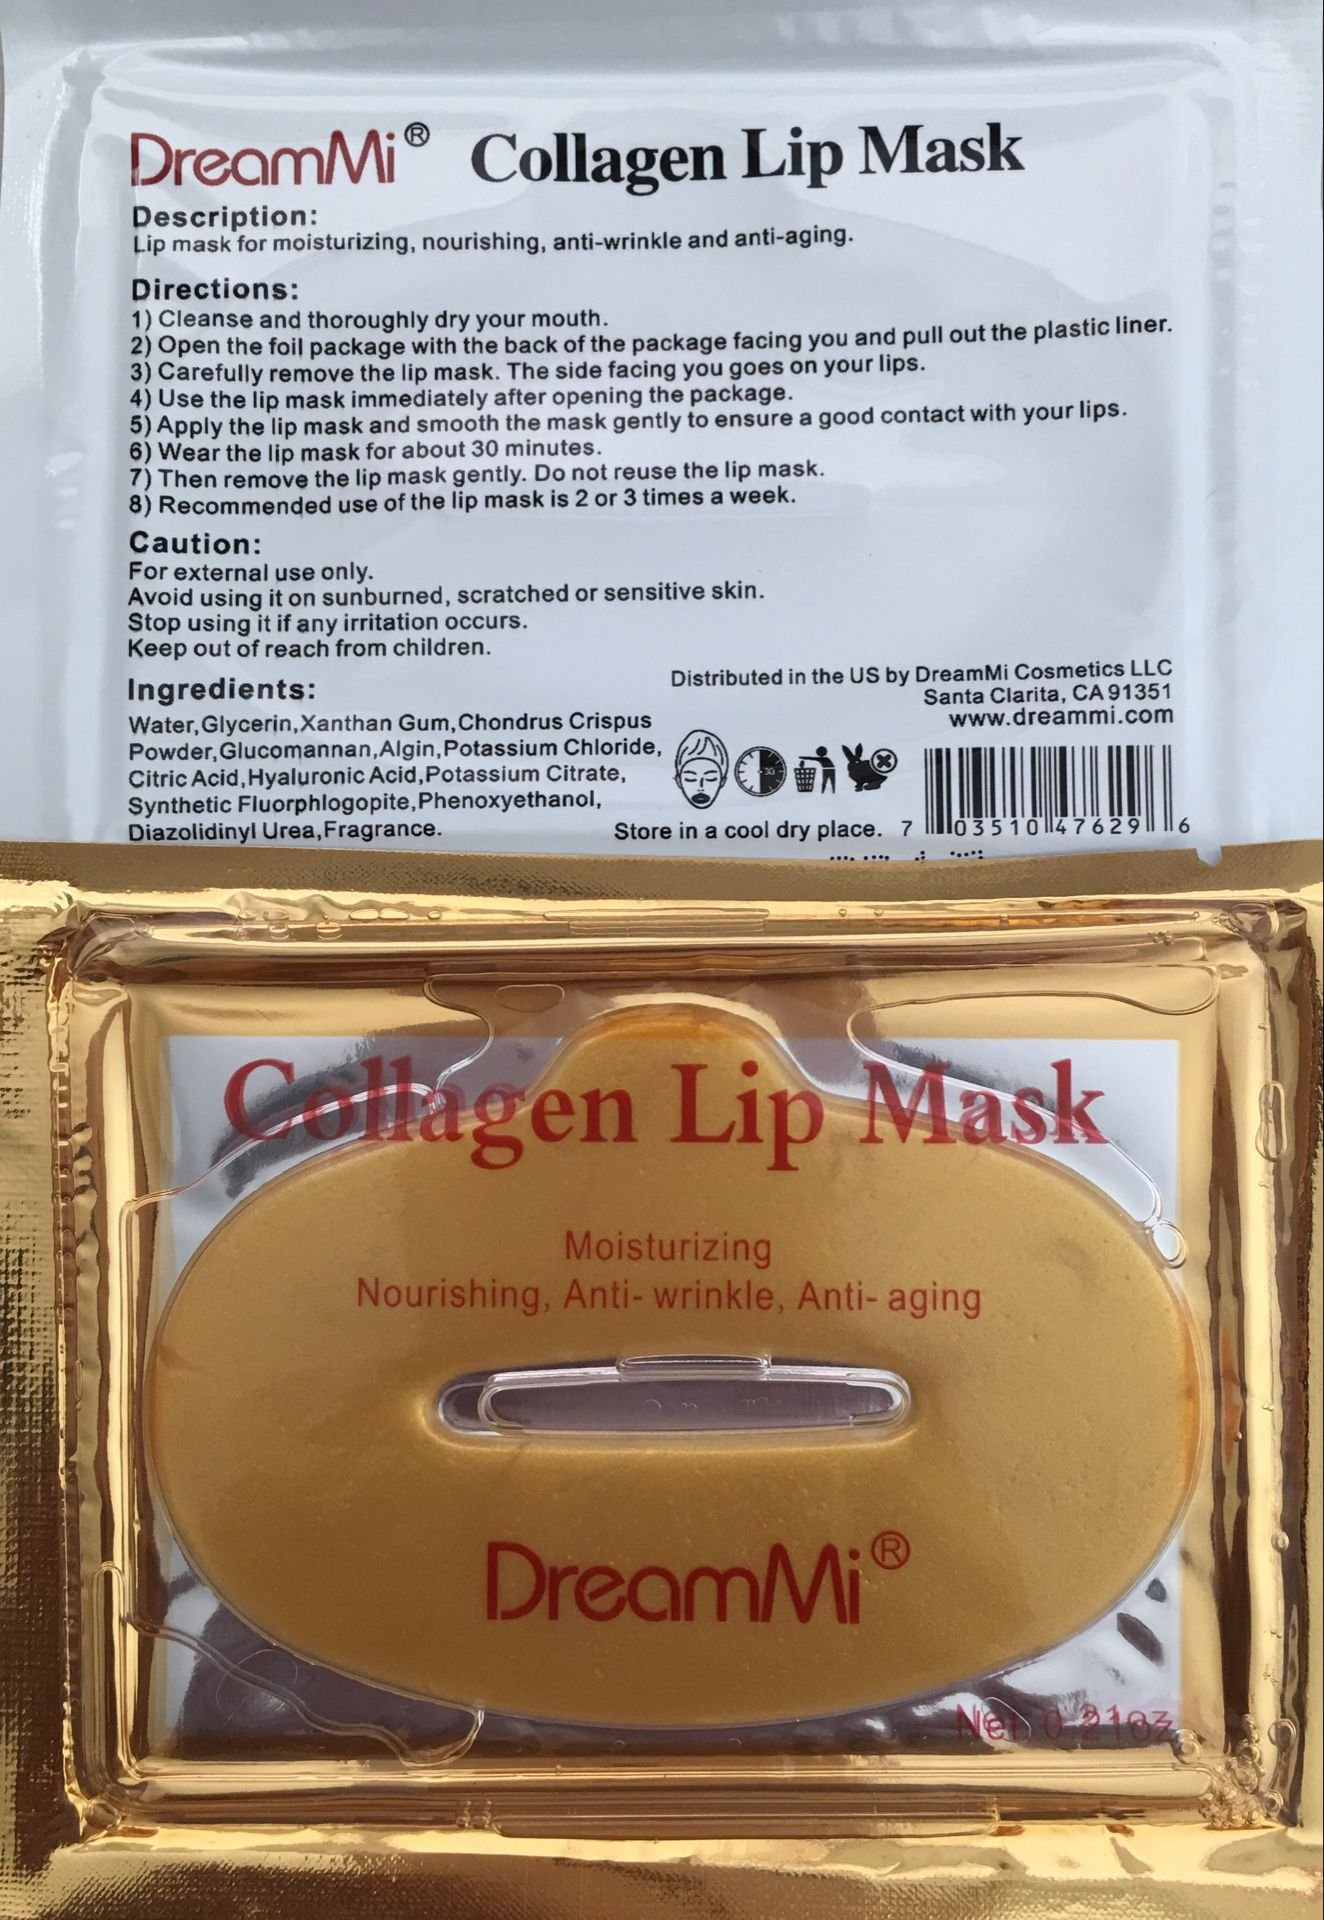 DreamMi 50 Pieces (Comes in 5 Boxes) Gold Bio Collagen Gel Lip Pad Mask Patch Sheet, Moisturizing, Nourishing, Anti Fine Line, Anti Wrinkle and Anti Aging, By DreamMi️ by DreamMi (Image #3)